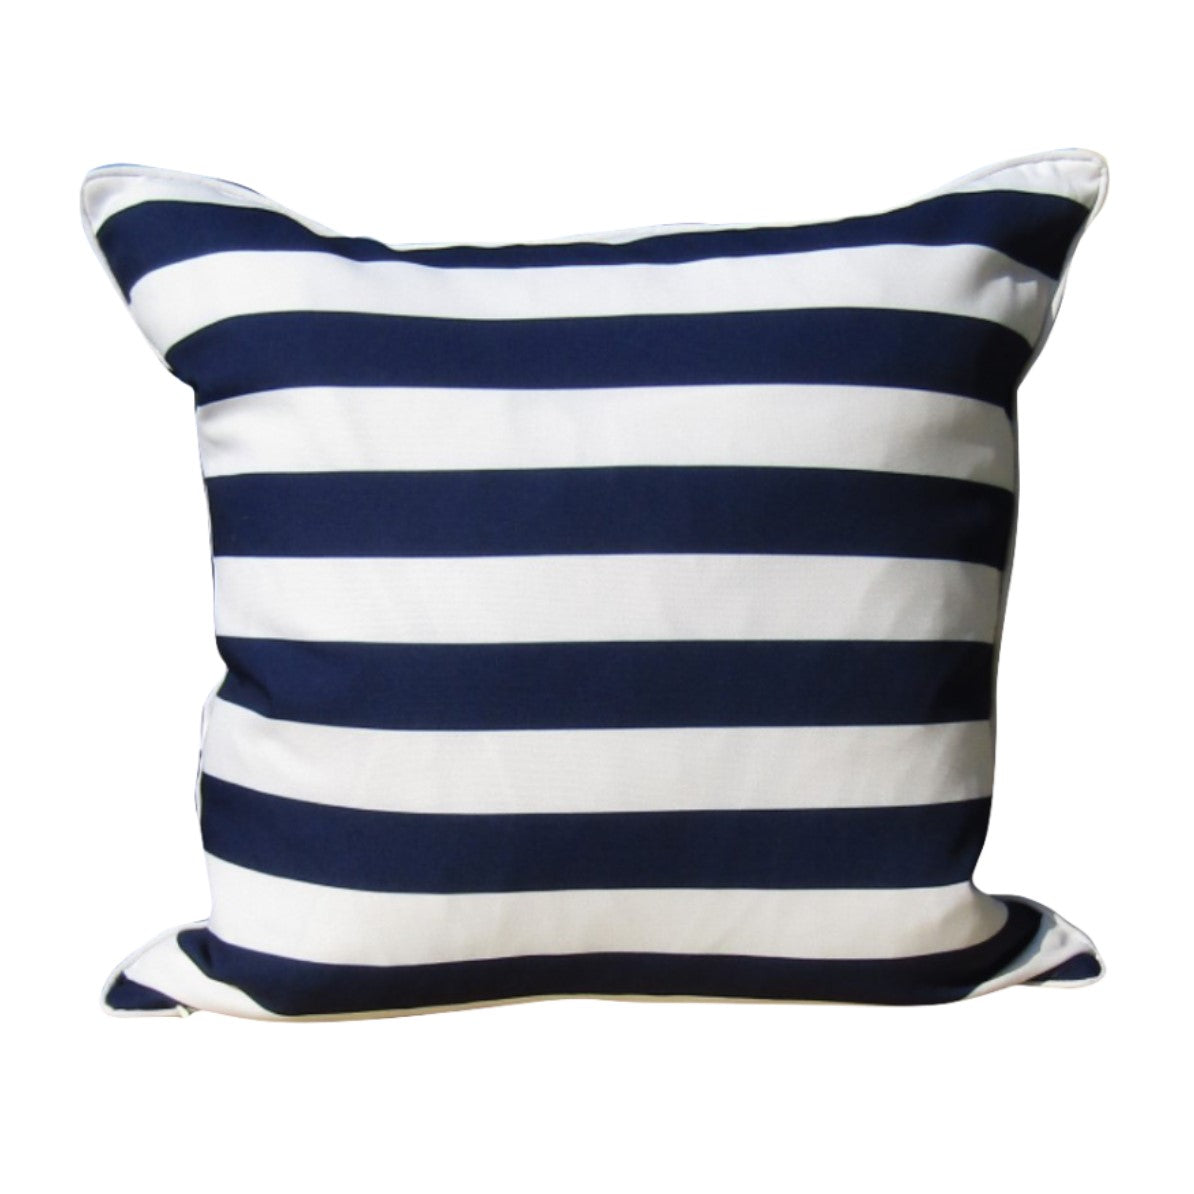 Beautiful Outdoor Cushion Covers By Happy Pillow Australia Made With 100 Weatherproof Polyester Canvas